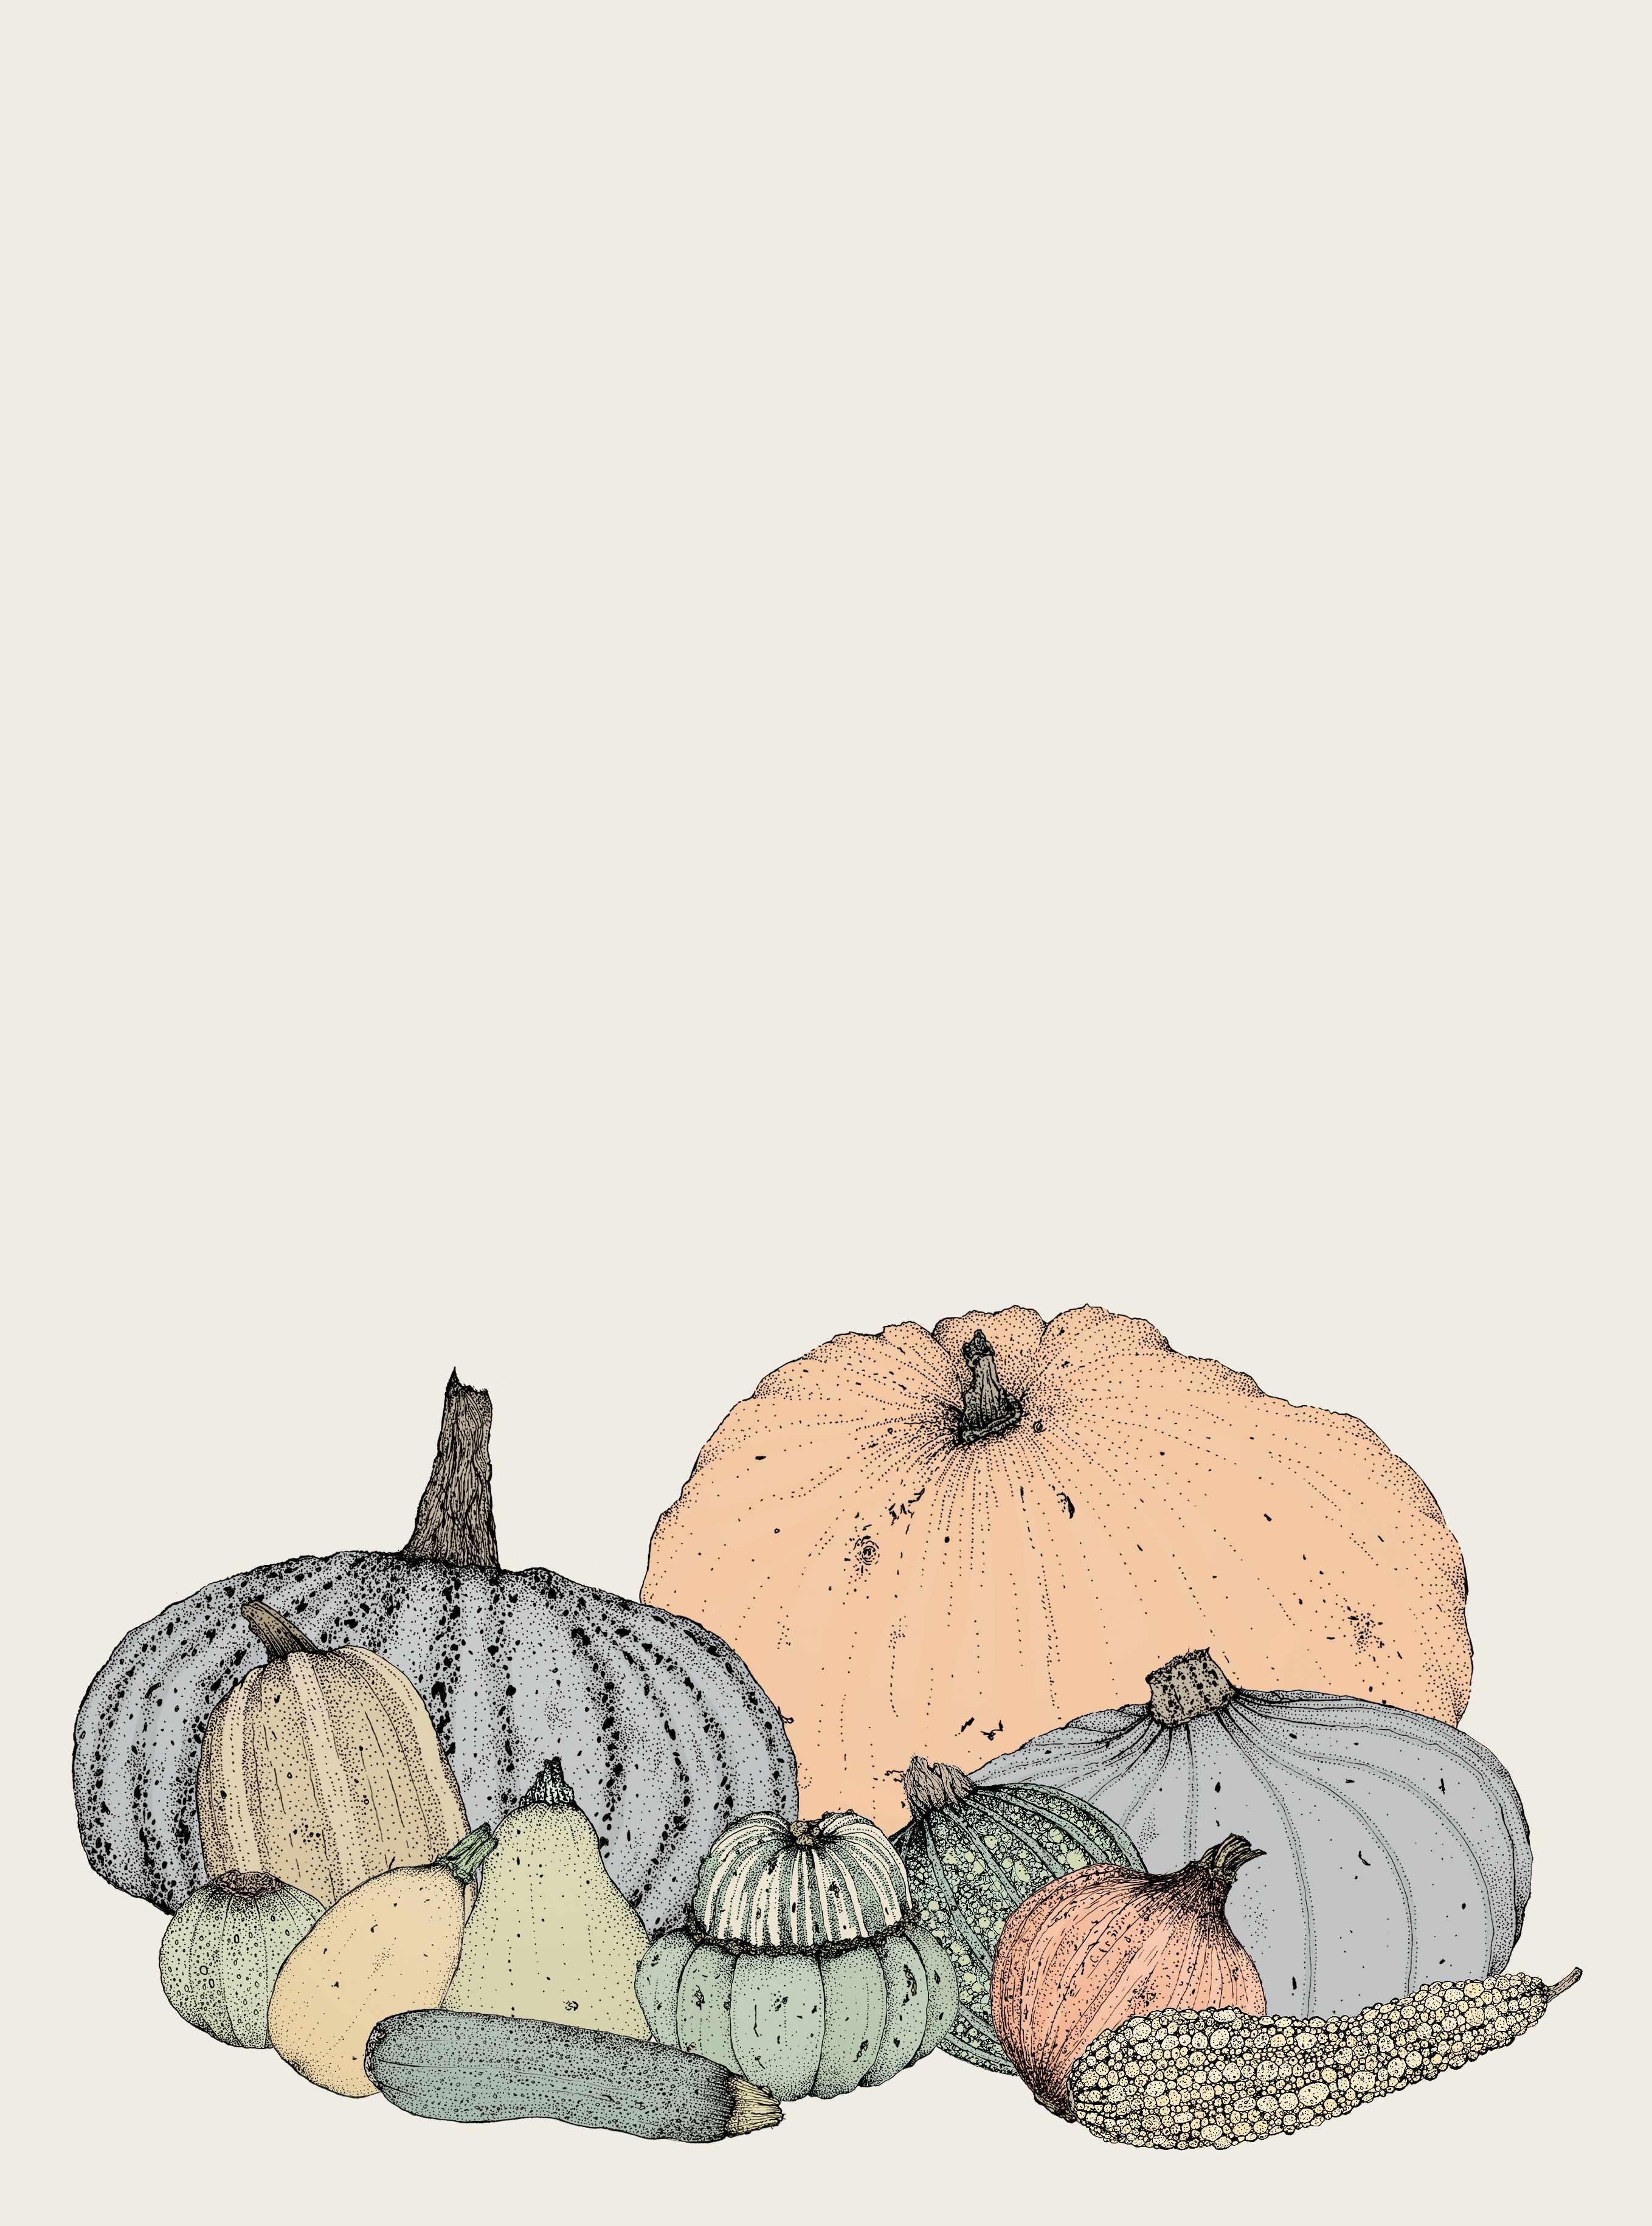 Pumpkins, courgettes and winter squash illustrated by artist Kerry Lemon.